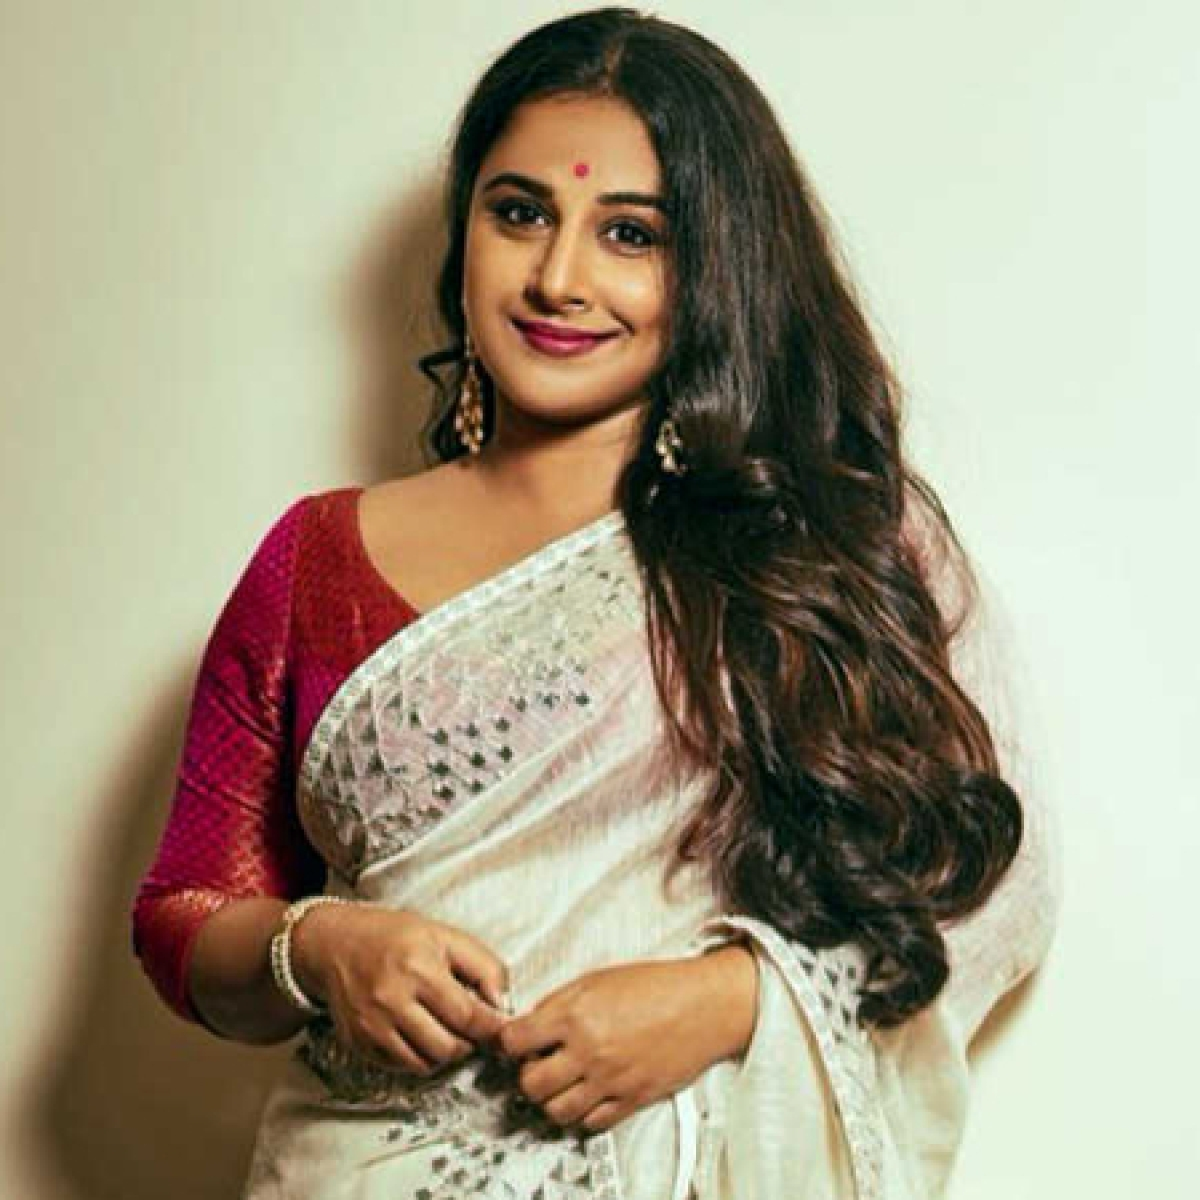 'People told me I should know how to cook': Vidya Balan opens up on facing gender bias